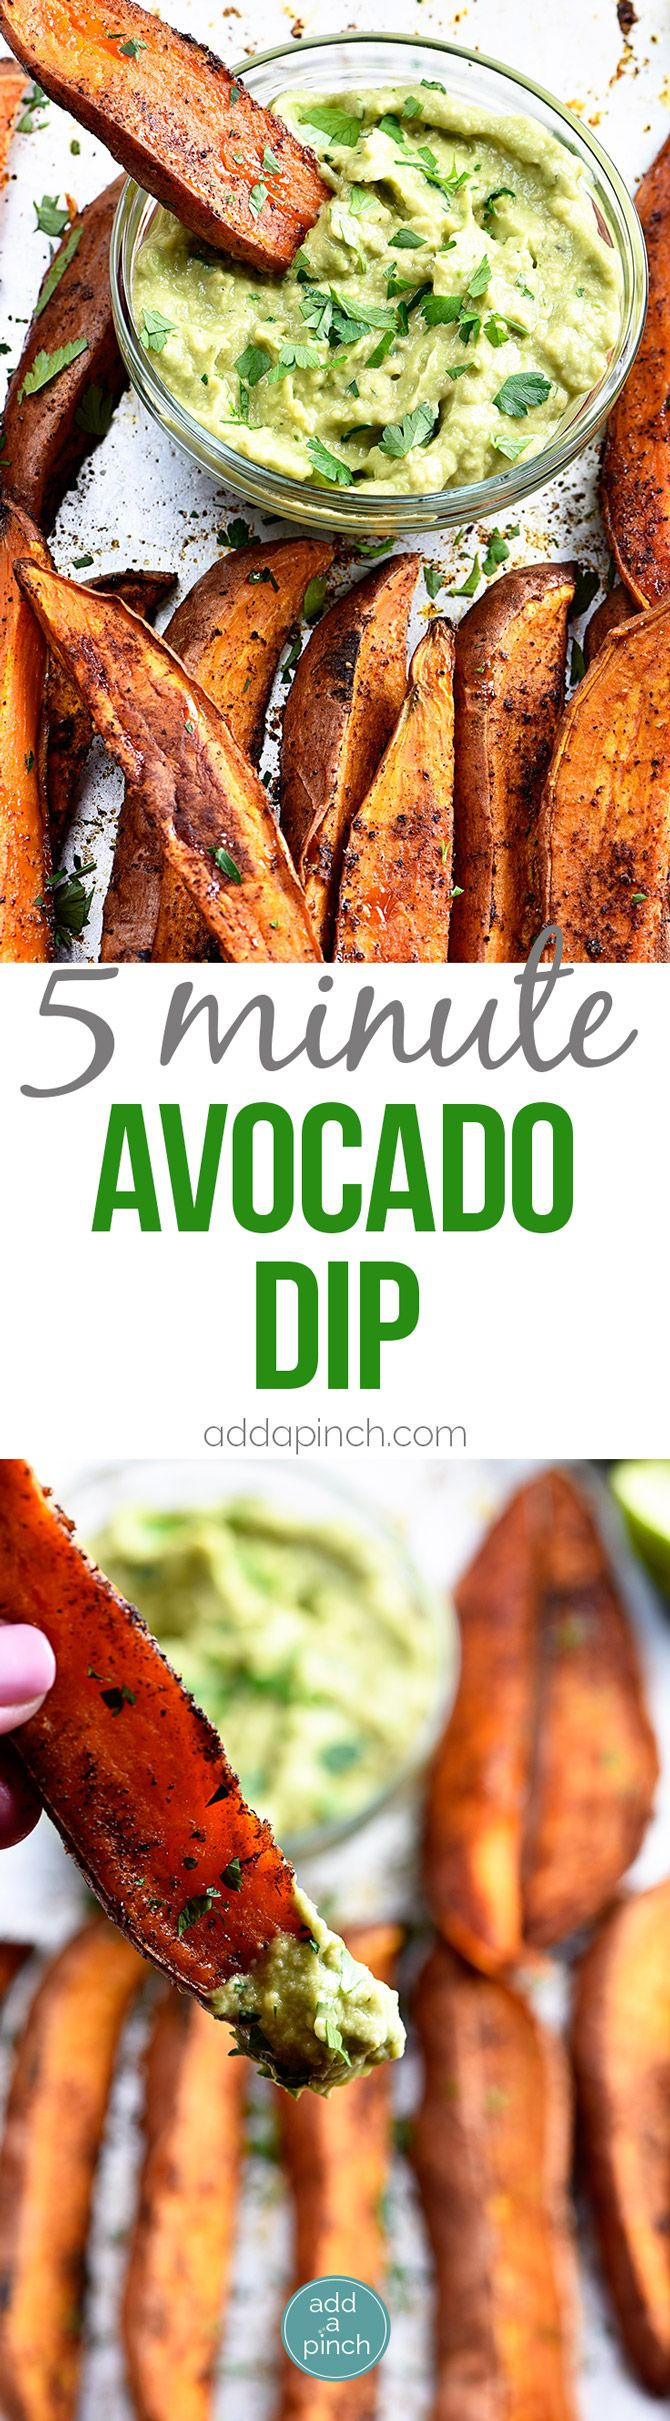 Avocado Dip (Avocado Crema) - This avocado dip recipe is quick, easy and delicious! It comes together in five minutes and is delicious served with so many dishes!